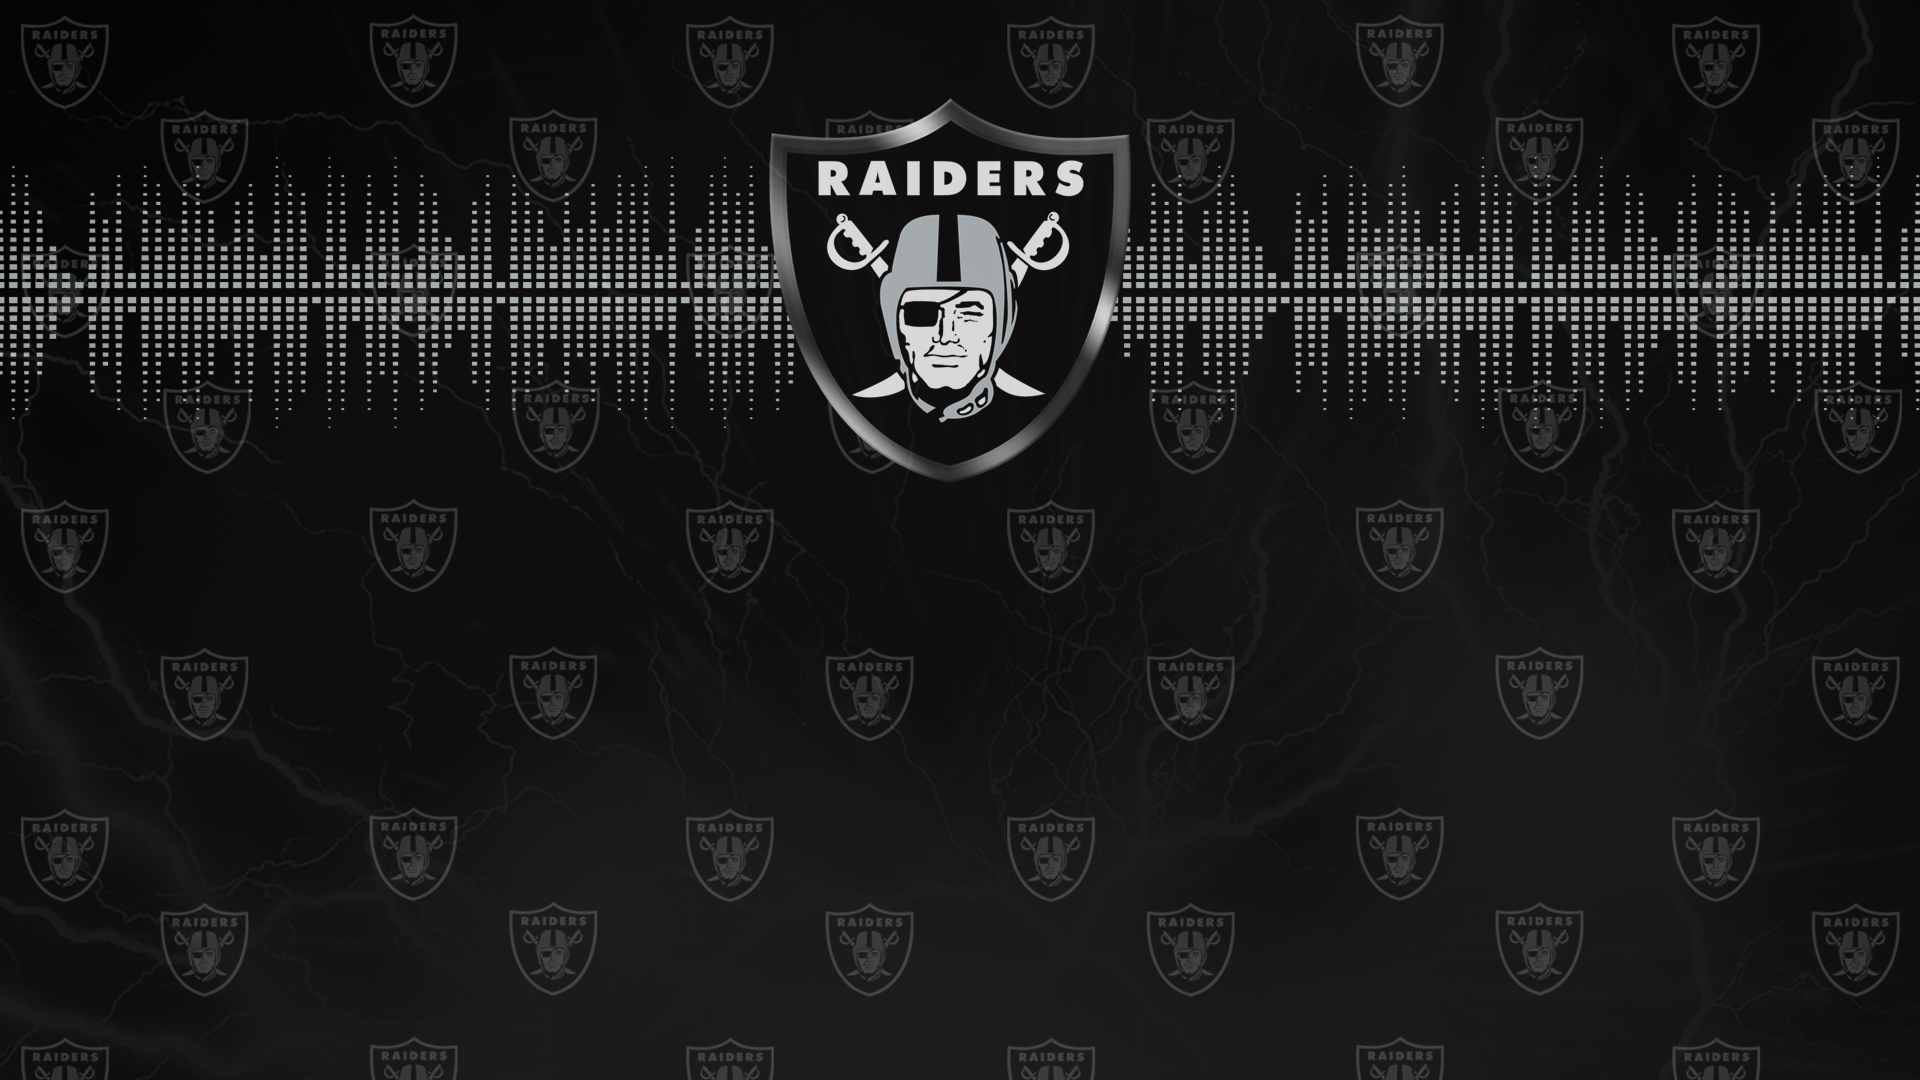 Oakland Raiders vs. Green Bay Packers